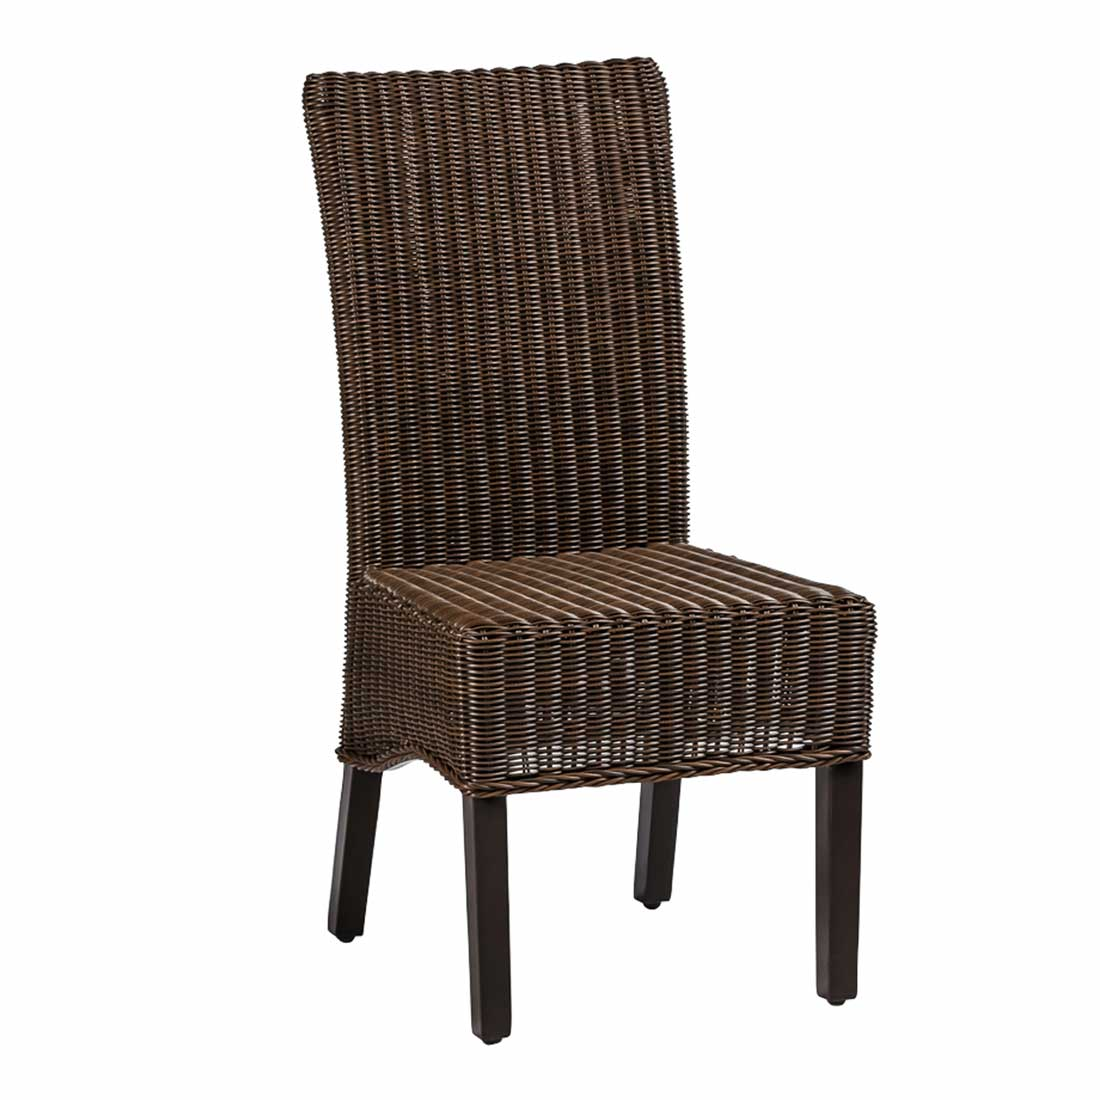 Parsons Caf 204 169 Chair Outdoor Cafe Chairs Summer Classics